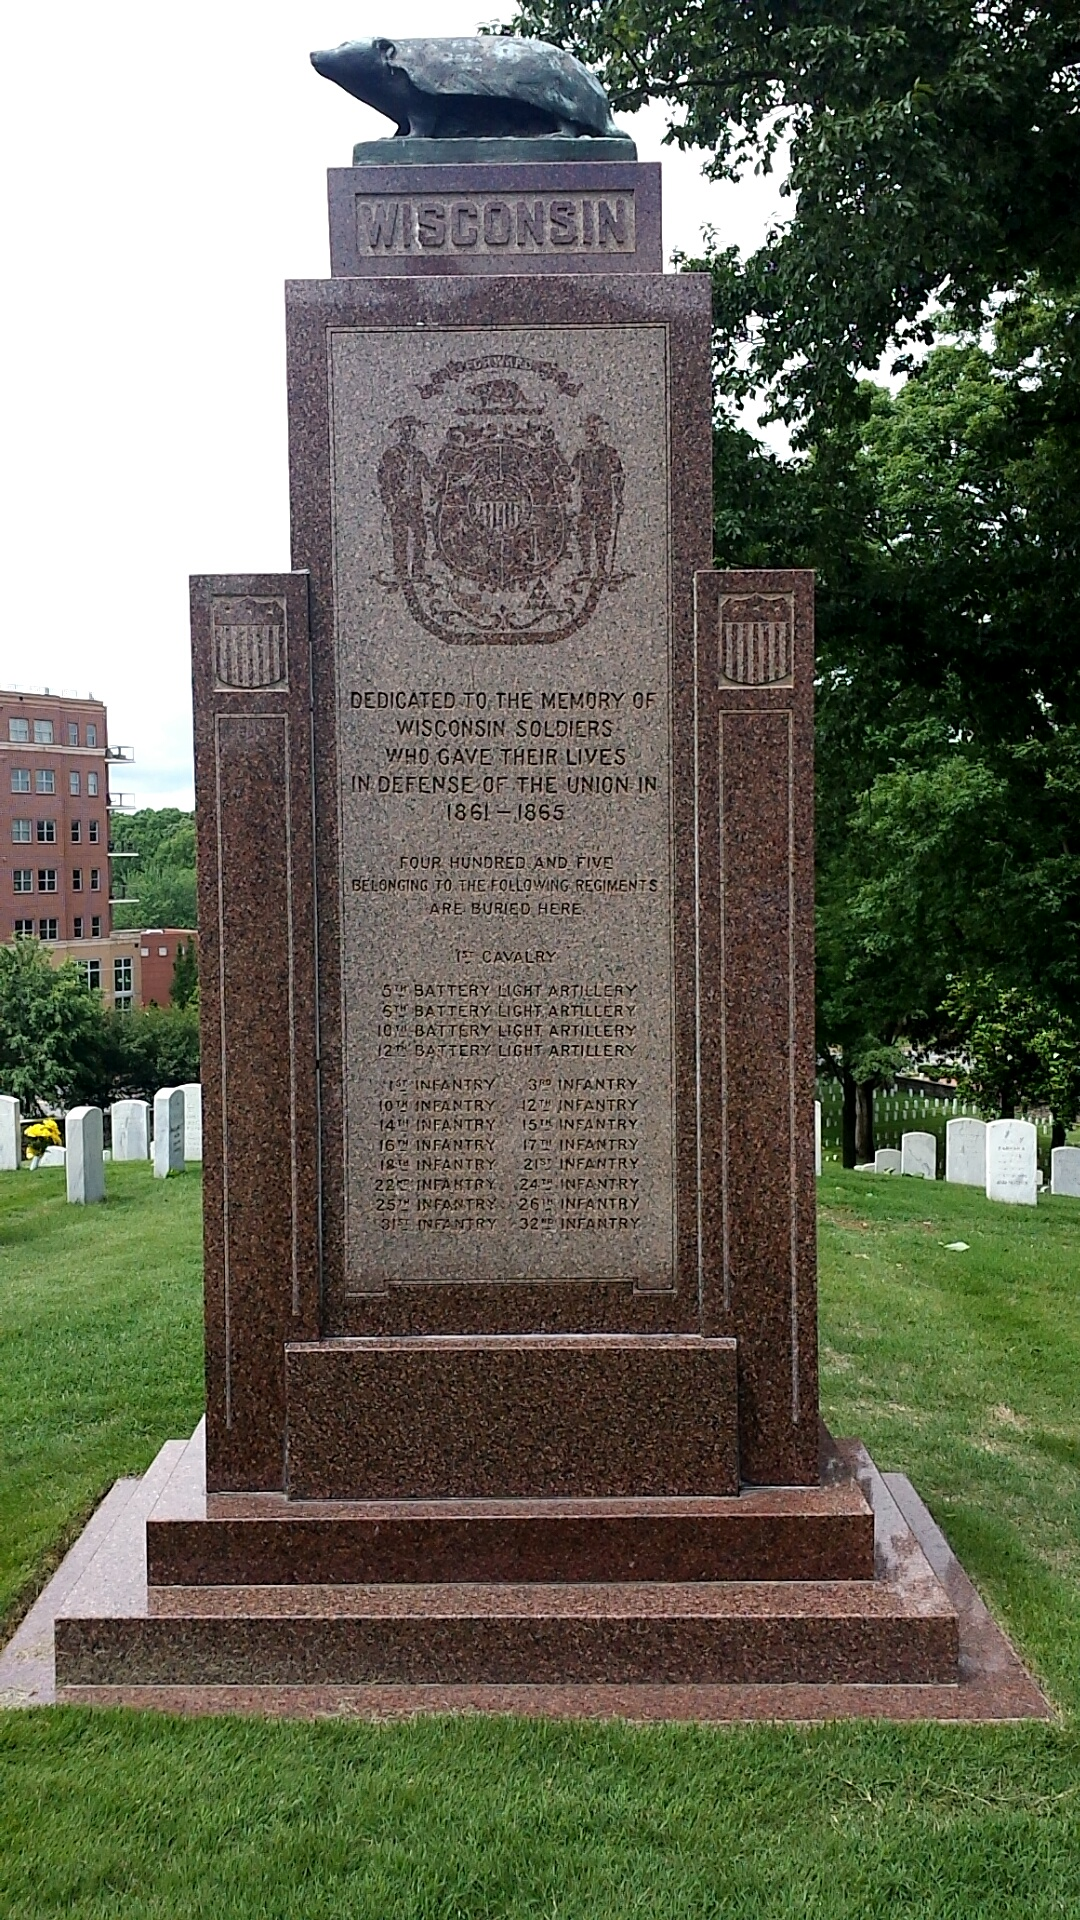 Dedication to the memory of Wisconsin soldiers who had died in battle in the Civil War.